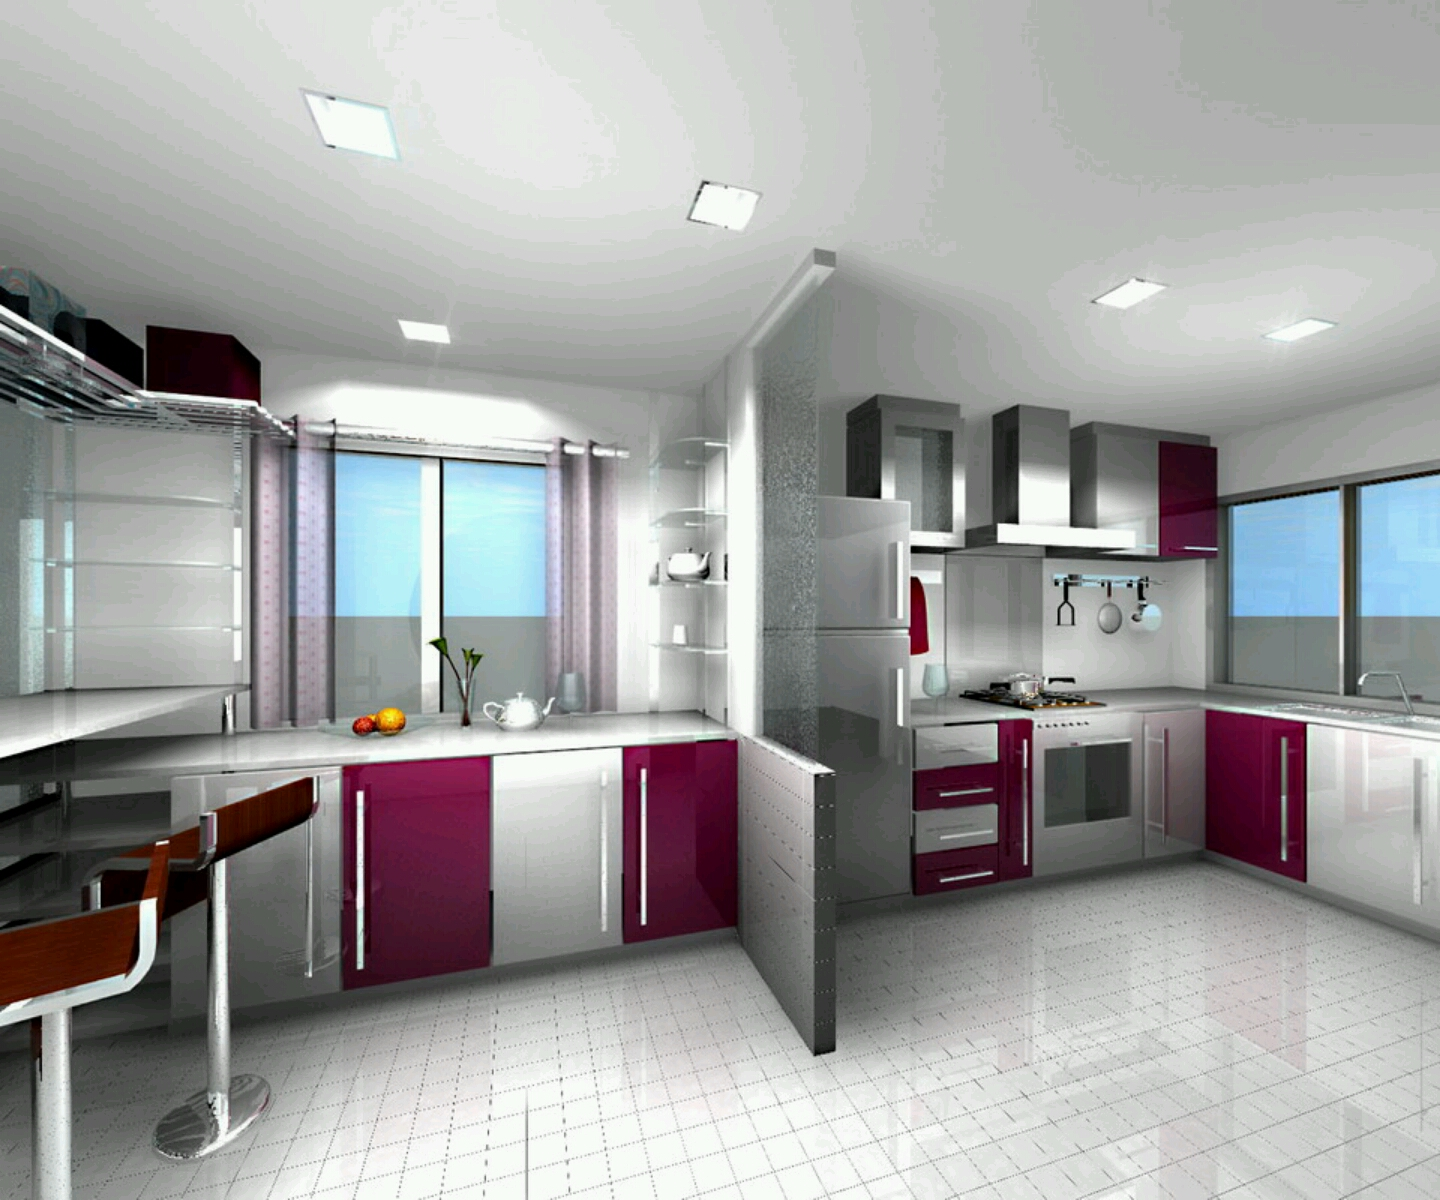 New home designs latest modern homes ultra modern kitchen designs ideas Kitchen design pictures modern